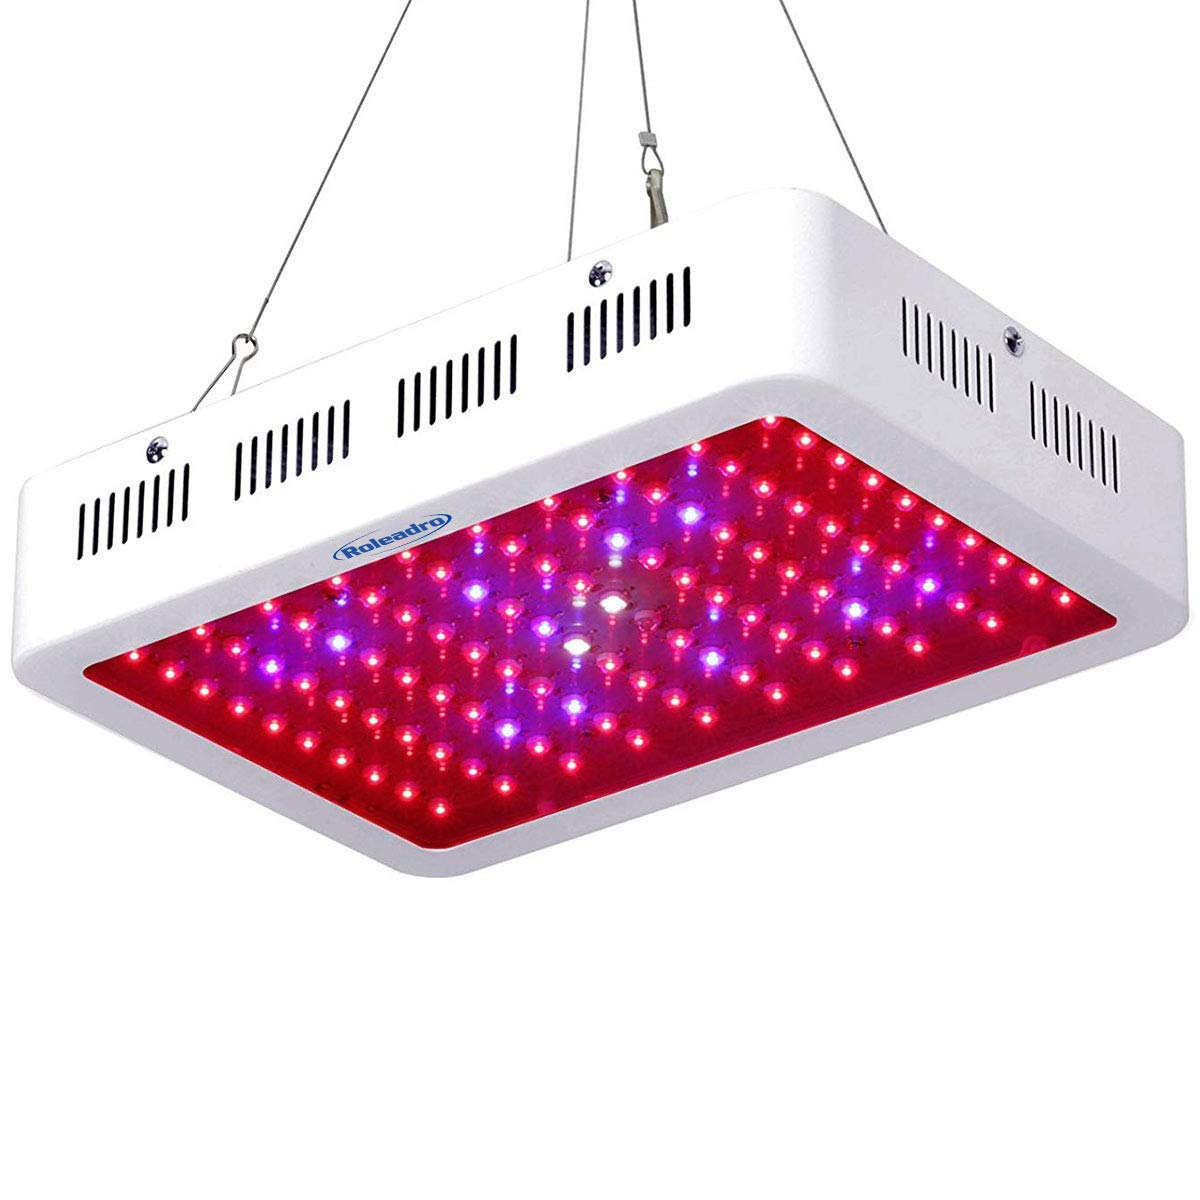 Top 10 Best Chinese Led Grow Lights Reviews in 2020 6